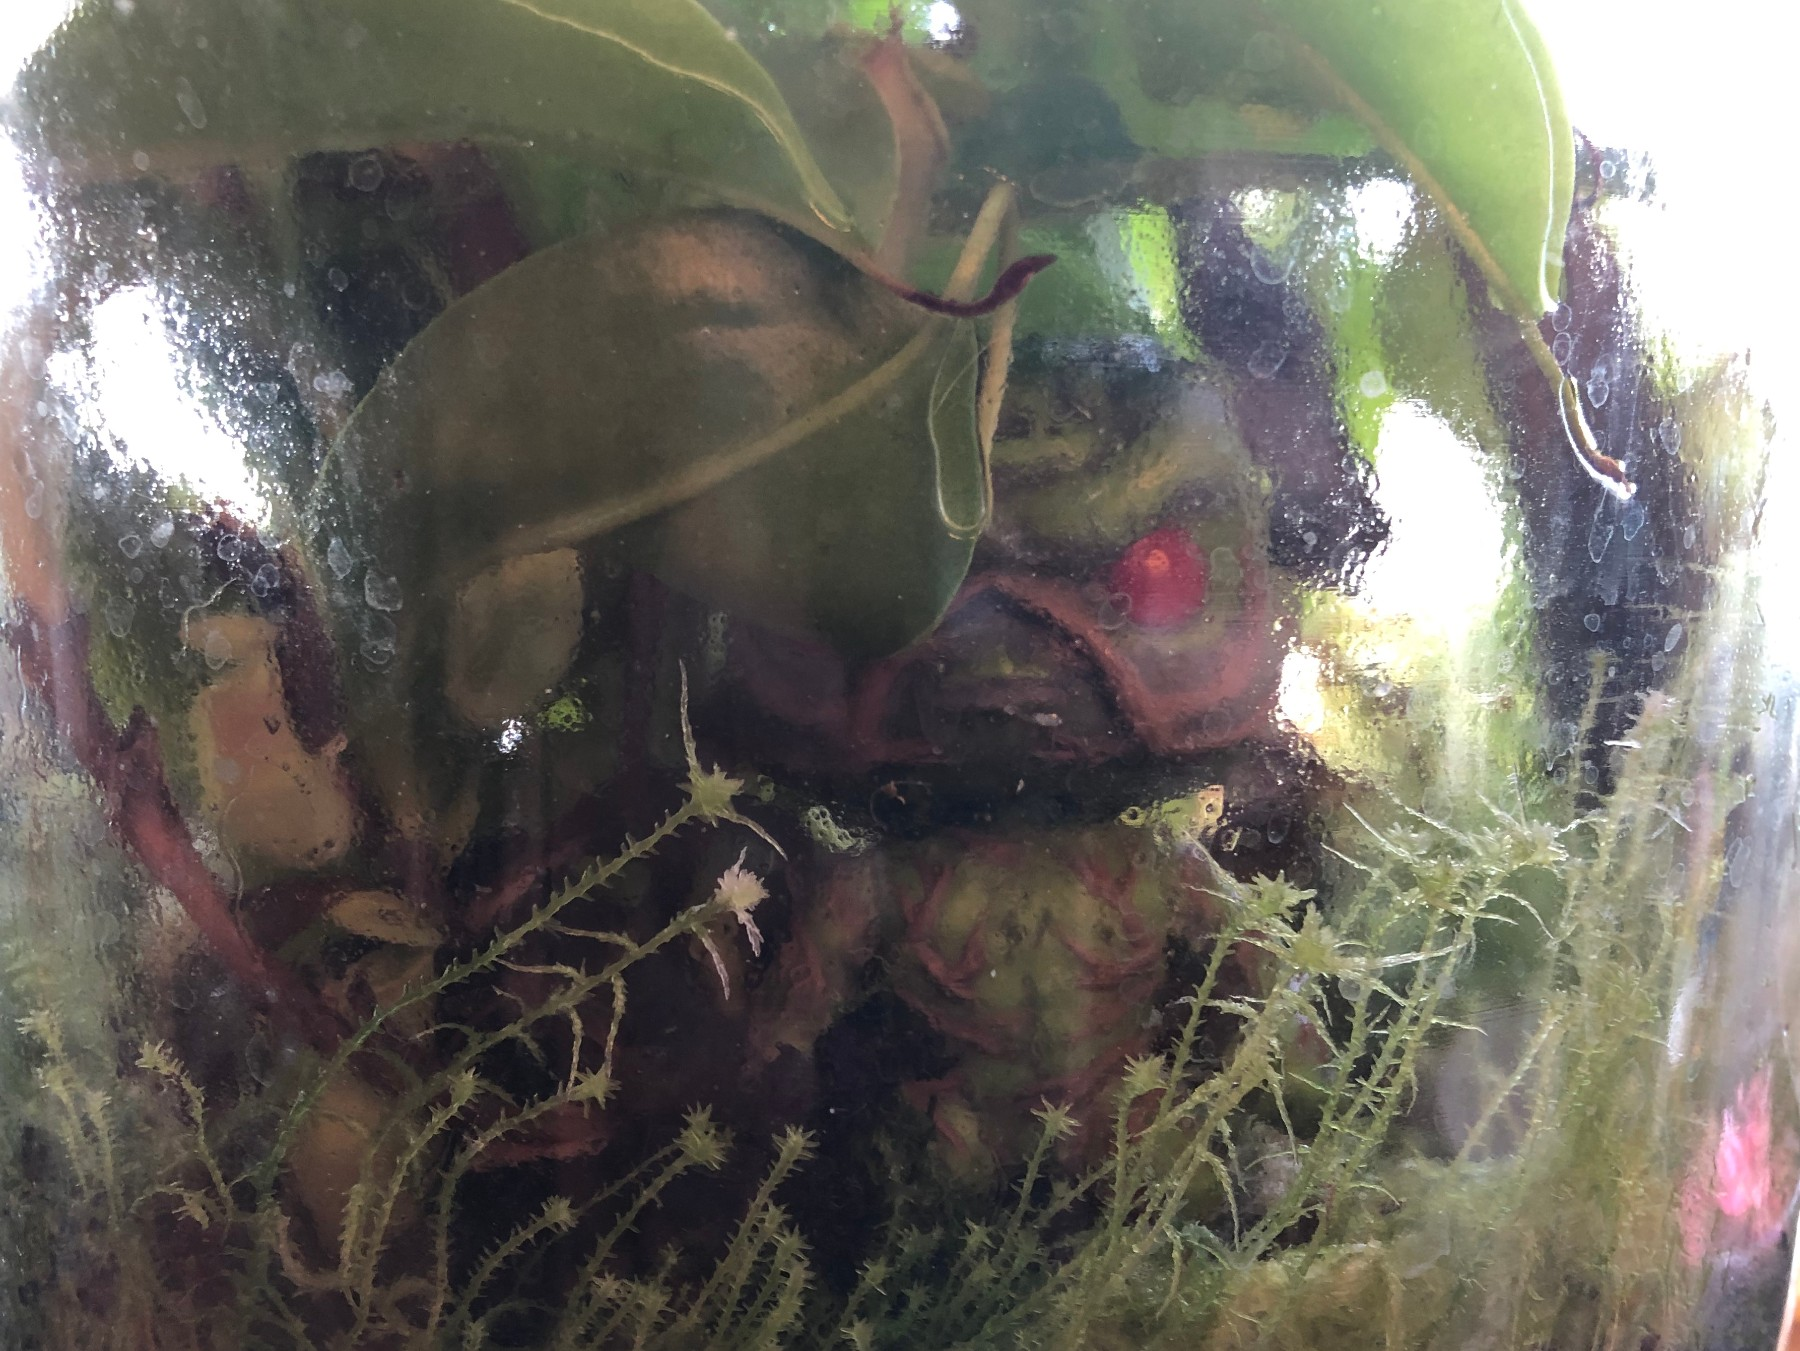 Swamp Thing in Pitcher Plant – Edited